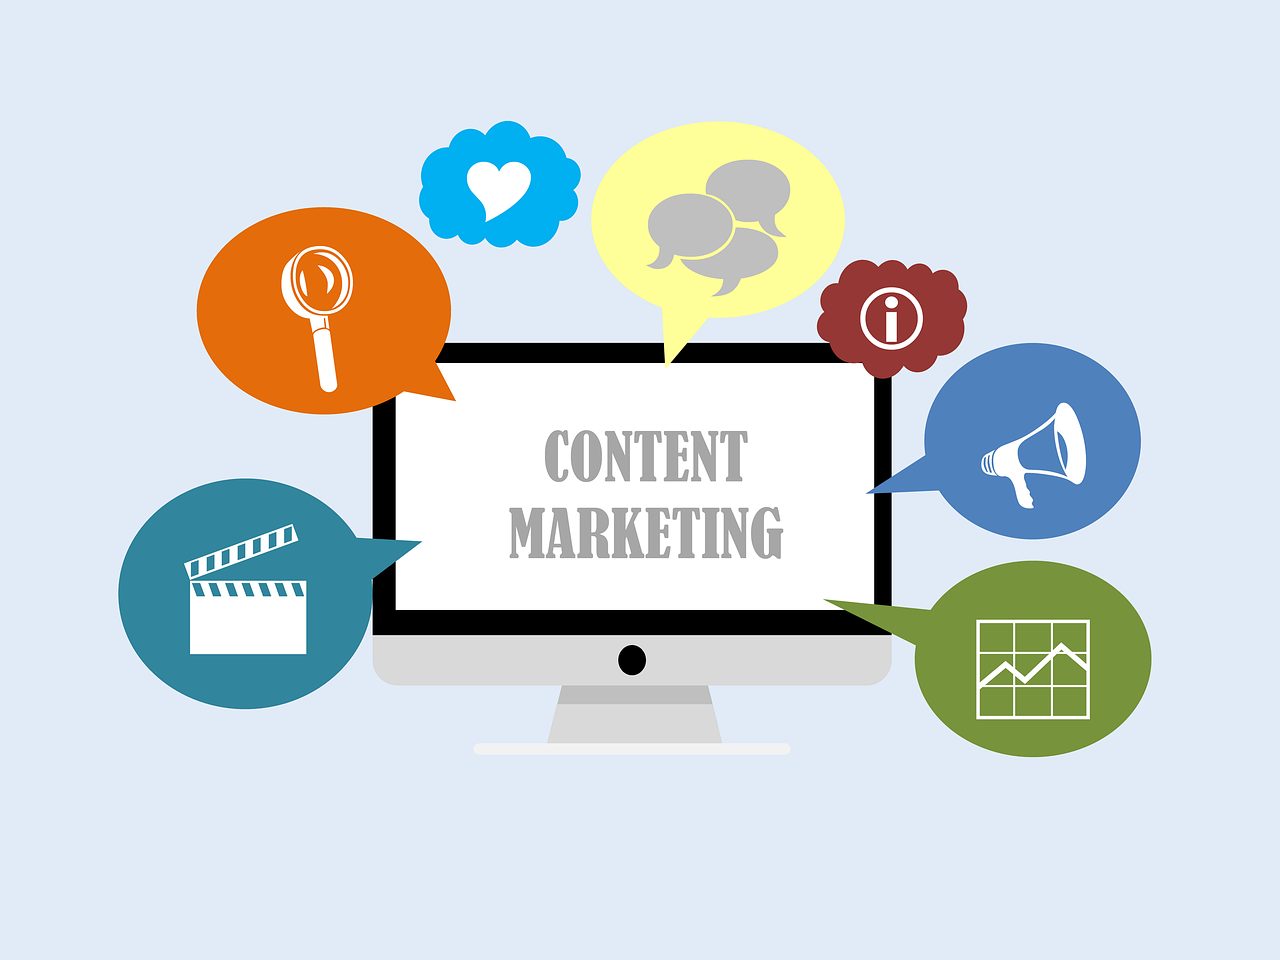 What are the different types of content marketing services?